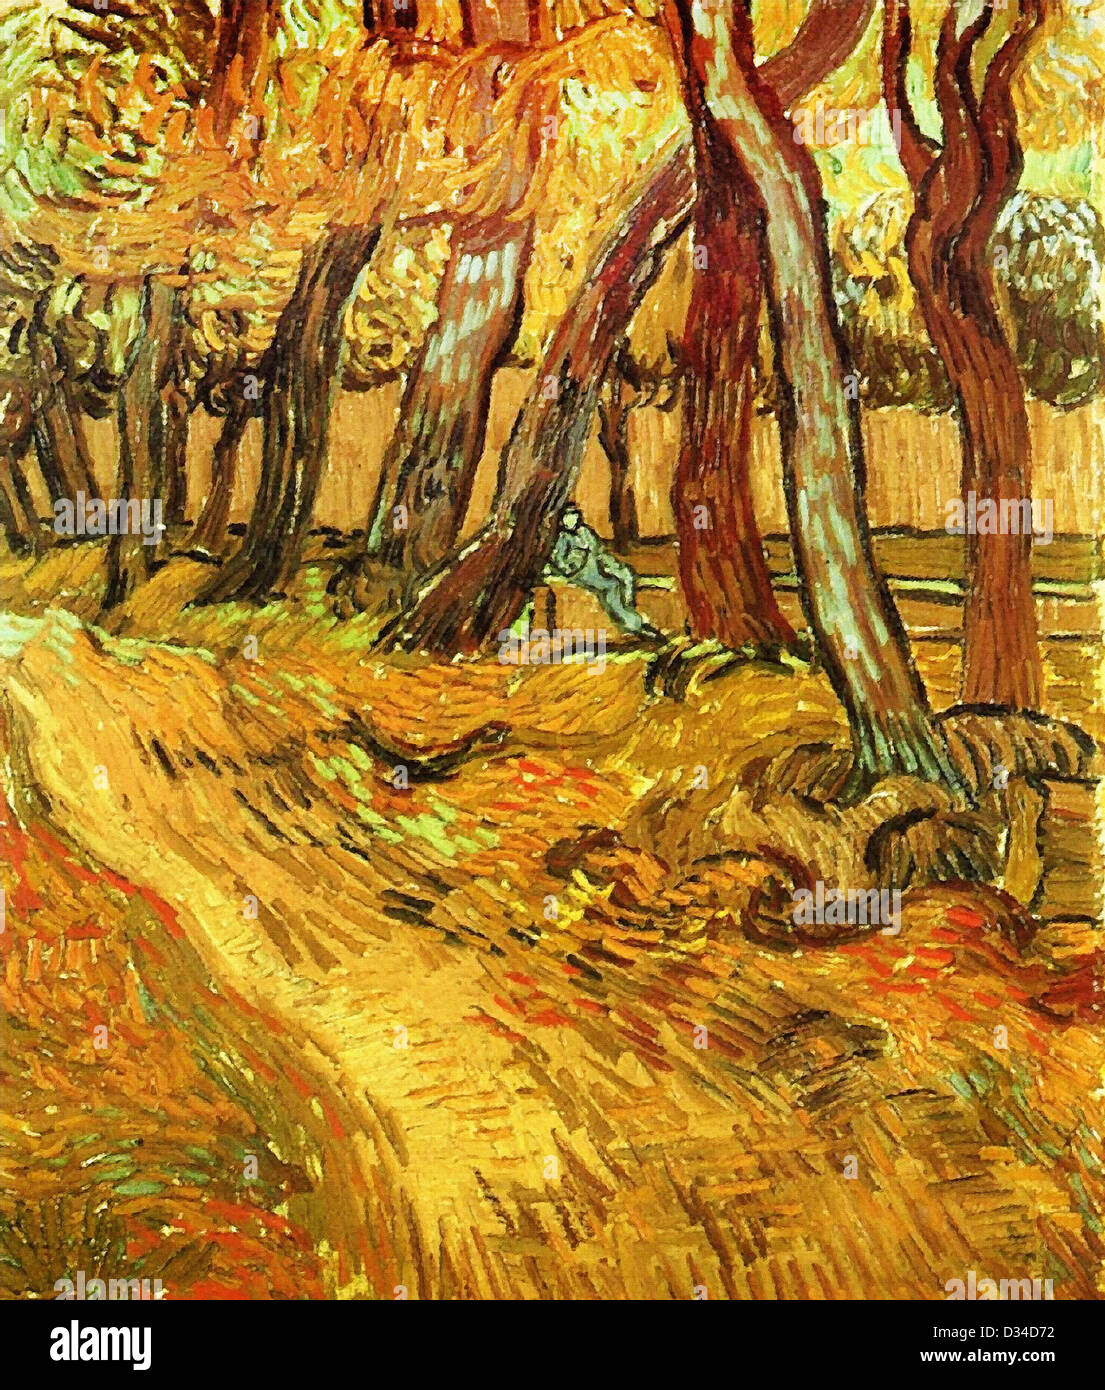 Vincent van Gogh, The Garden of Saint-Paul Hospital with Figure. 1889. Post-Impressionism. Oil on canvas. - Stock Image